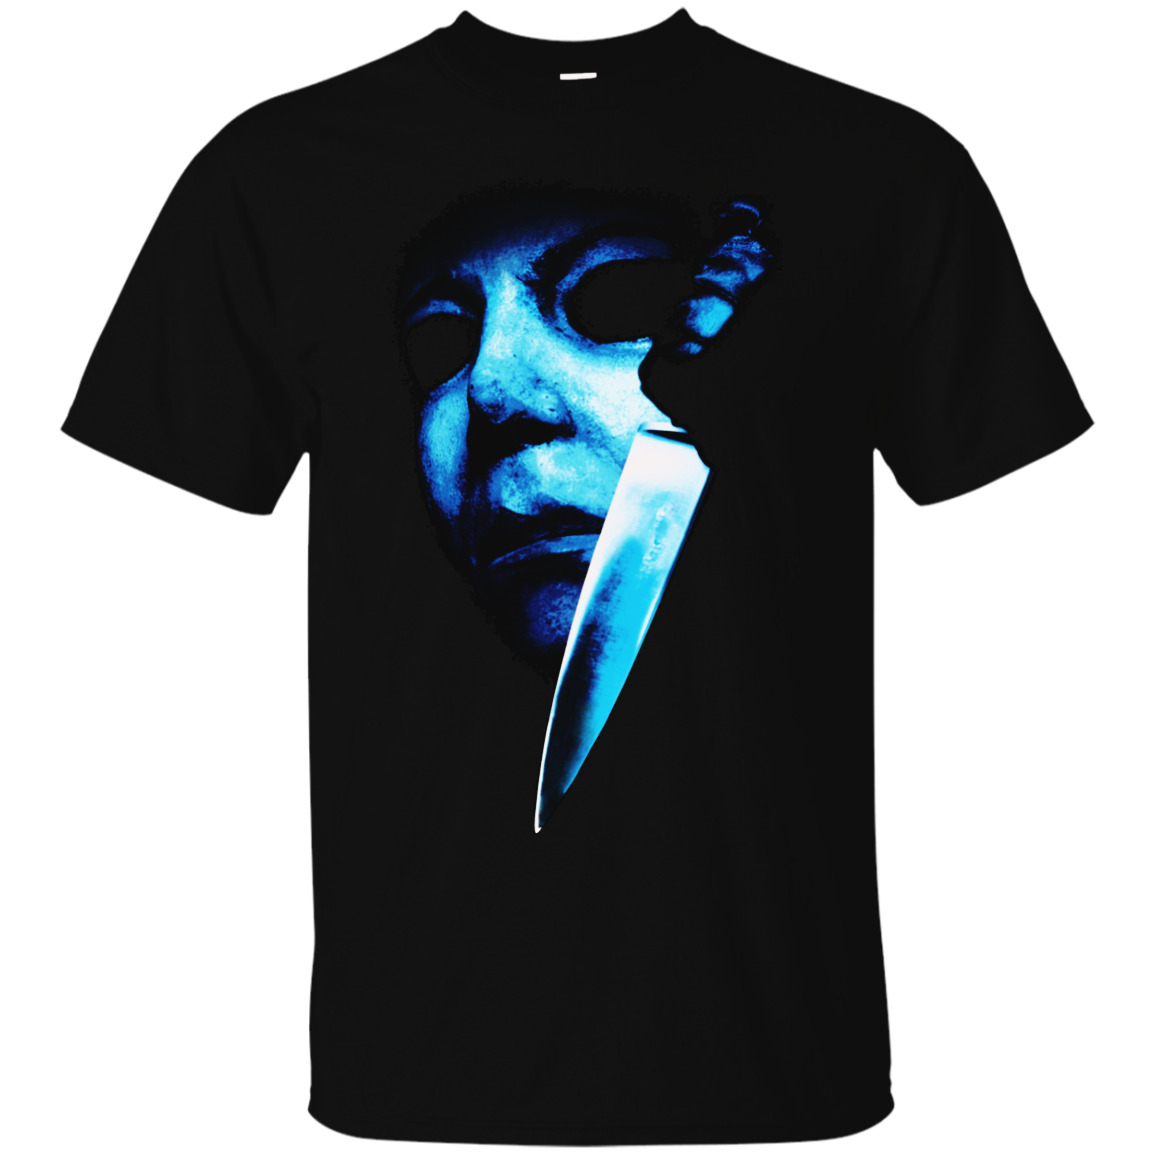 Halloween, Horror, Slasher, Movie, Michael Myers, Jason Voohees, T-shirt image